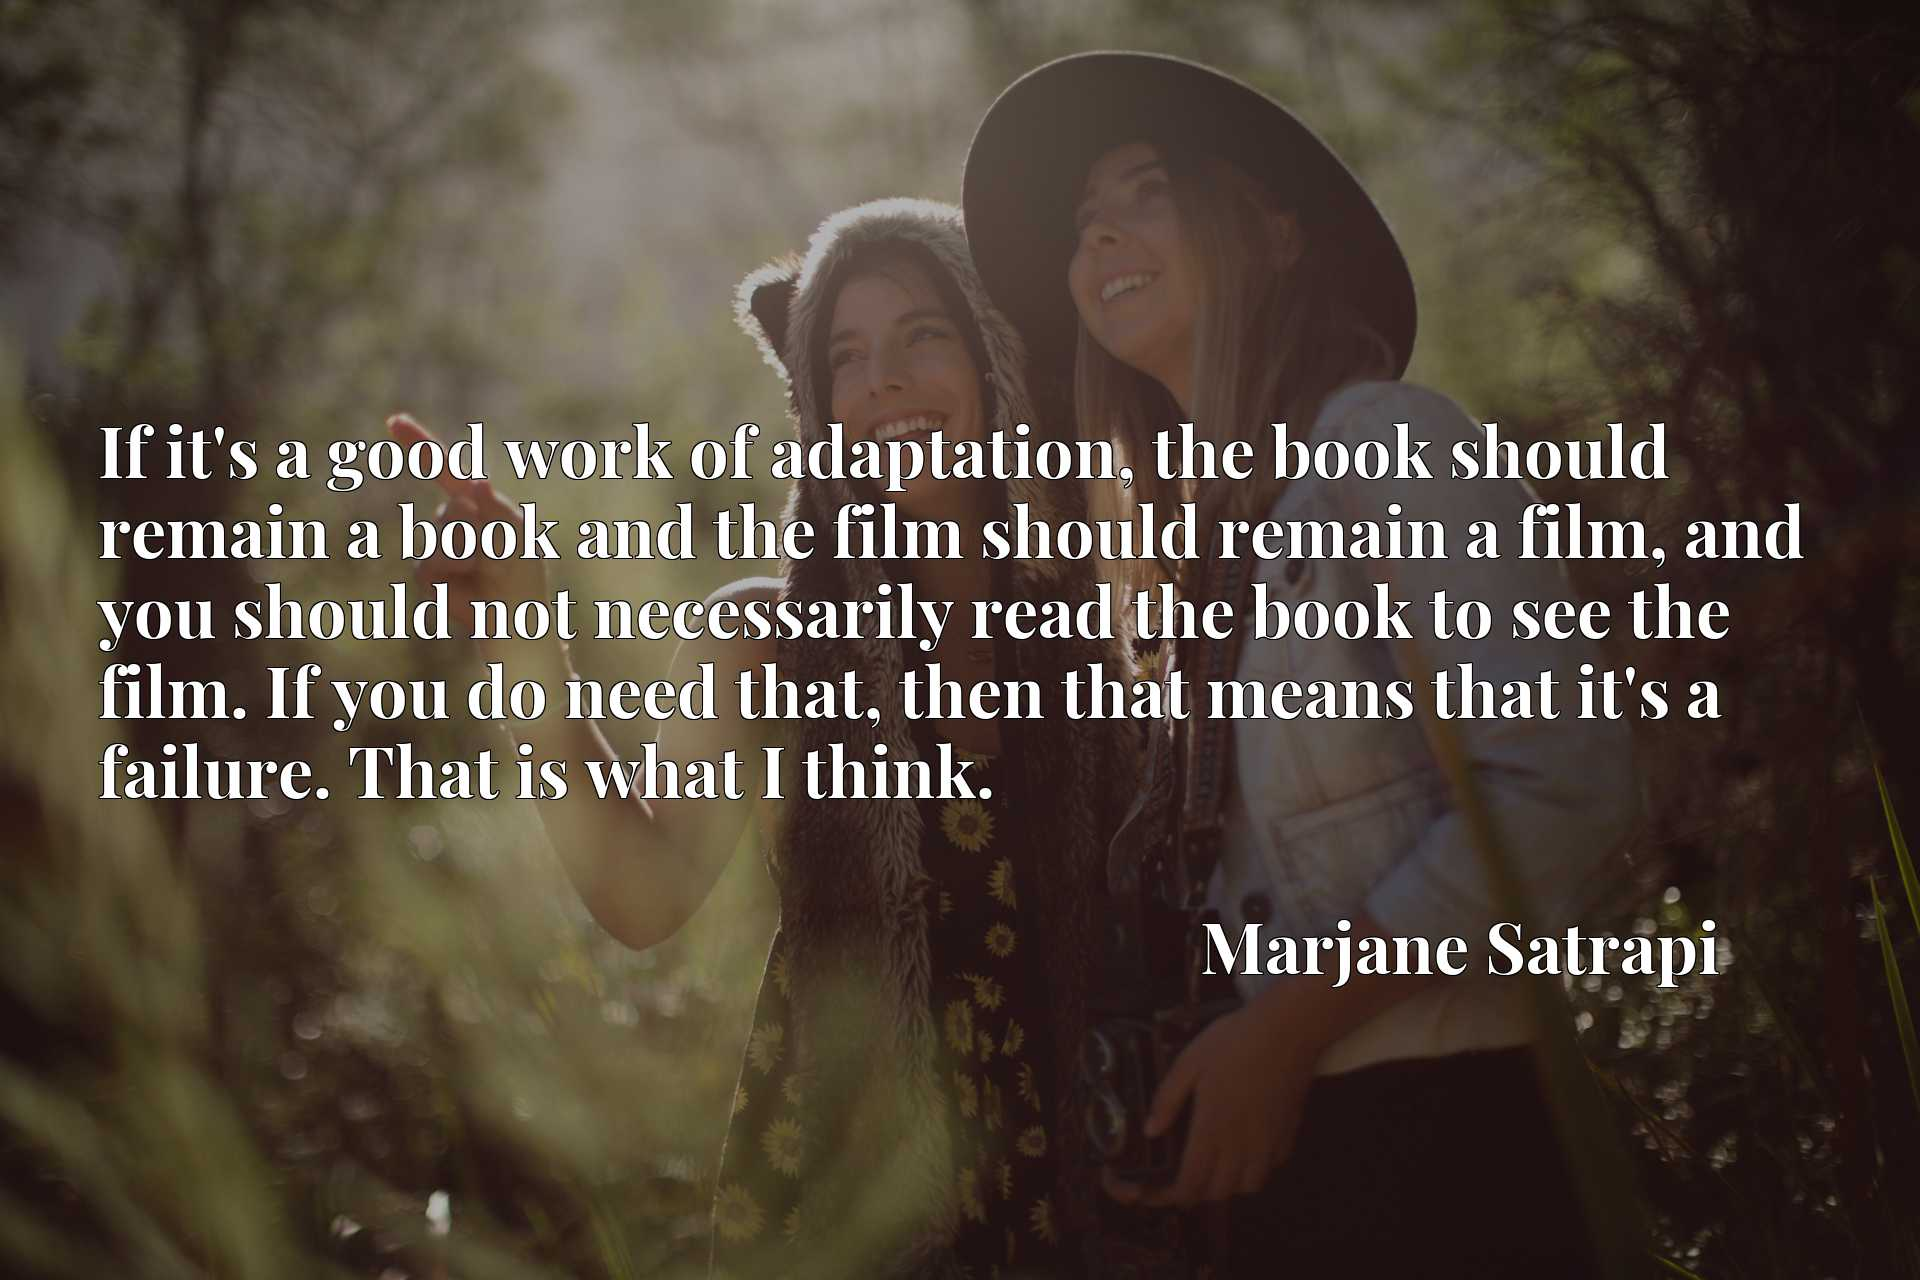 If it's a good work of adaptation, the book should remain a book and the film should remain a film, and you should not necessarily read the book to see the film. If you do need that, then that means that it's a failure. That is what I think.